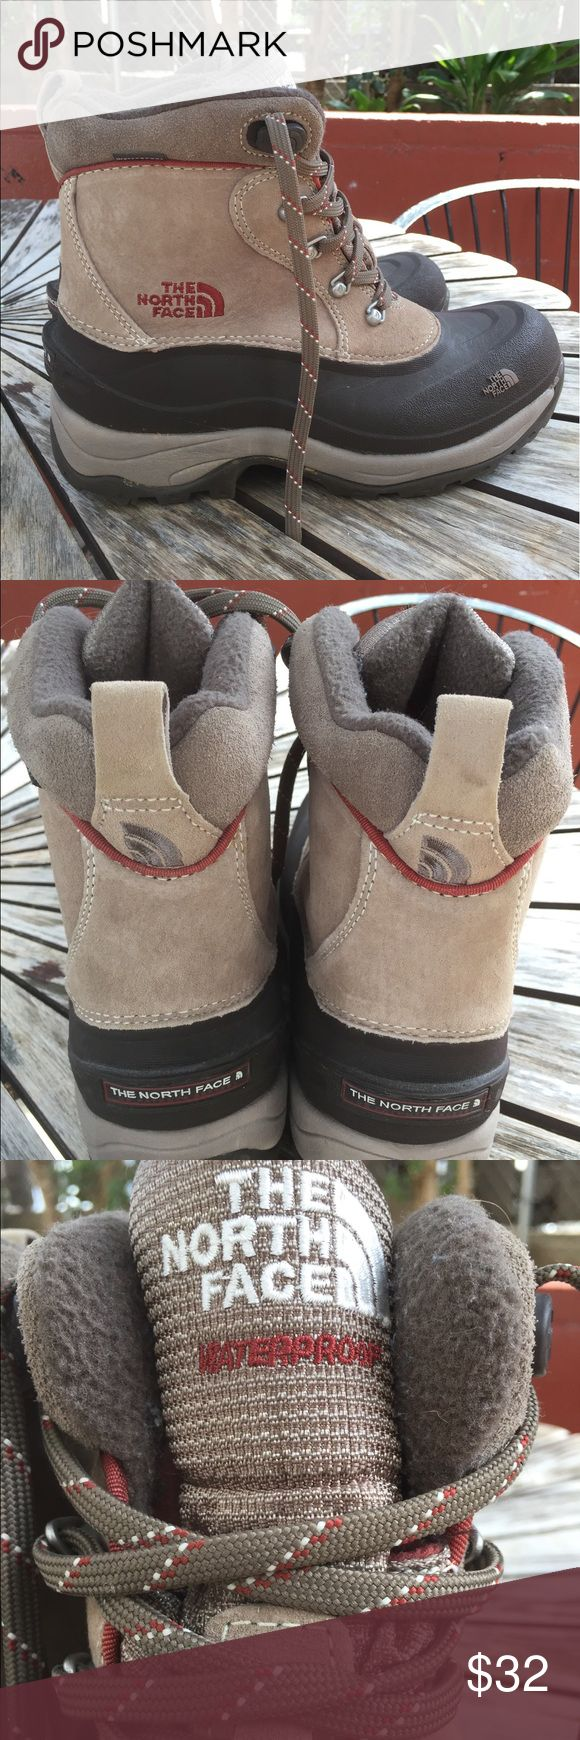 NORTH FACE Hiking boots. Gorgeous looking North Face wet weather hiking boots. They look  barely used and the tread shows no signs of wear. Taupe brown with brownish red and black accents The North Face Shoes Winter & Rain Boots